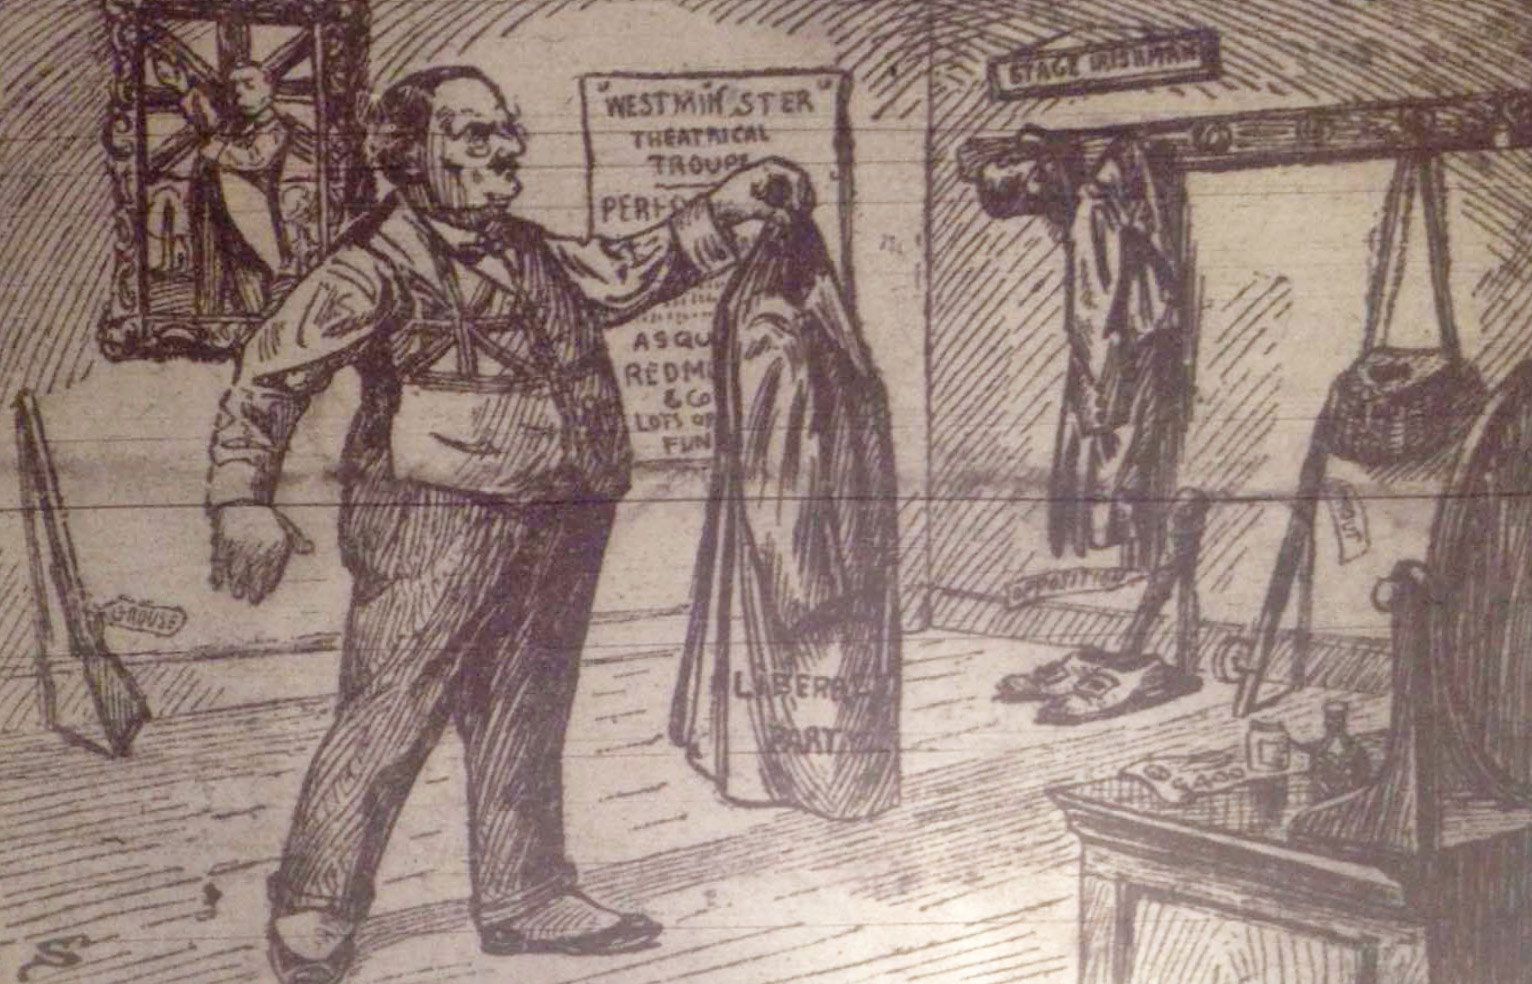 The more advanced nationalist papers have been critical of the Irish Party for some time. This cartoon from 'The Irish Nation' paints Redmond as a Liberal party stooge, referring to him as a 'Stage Irishman'